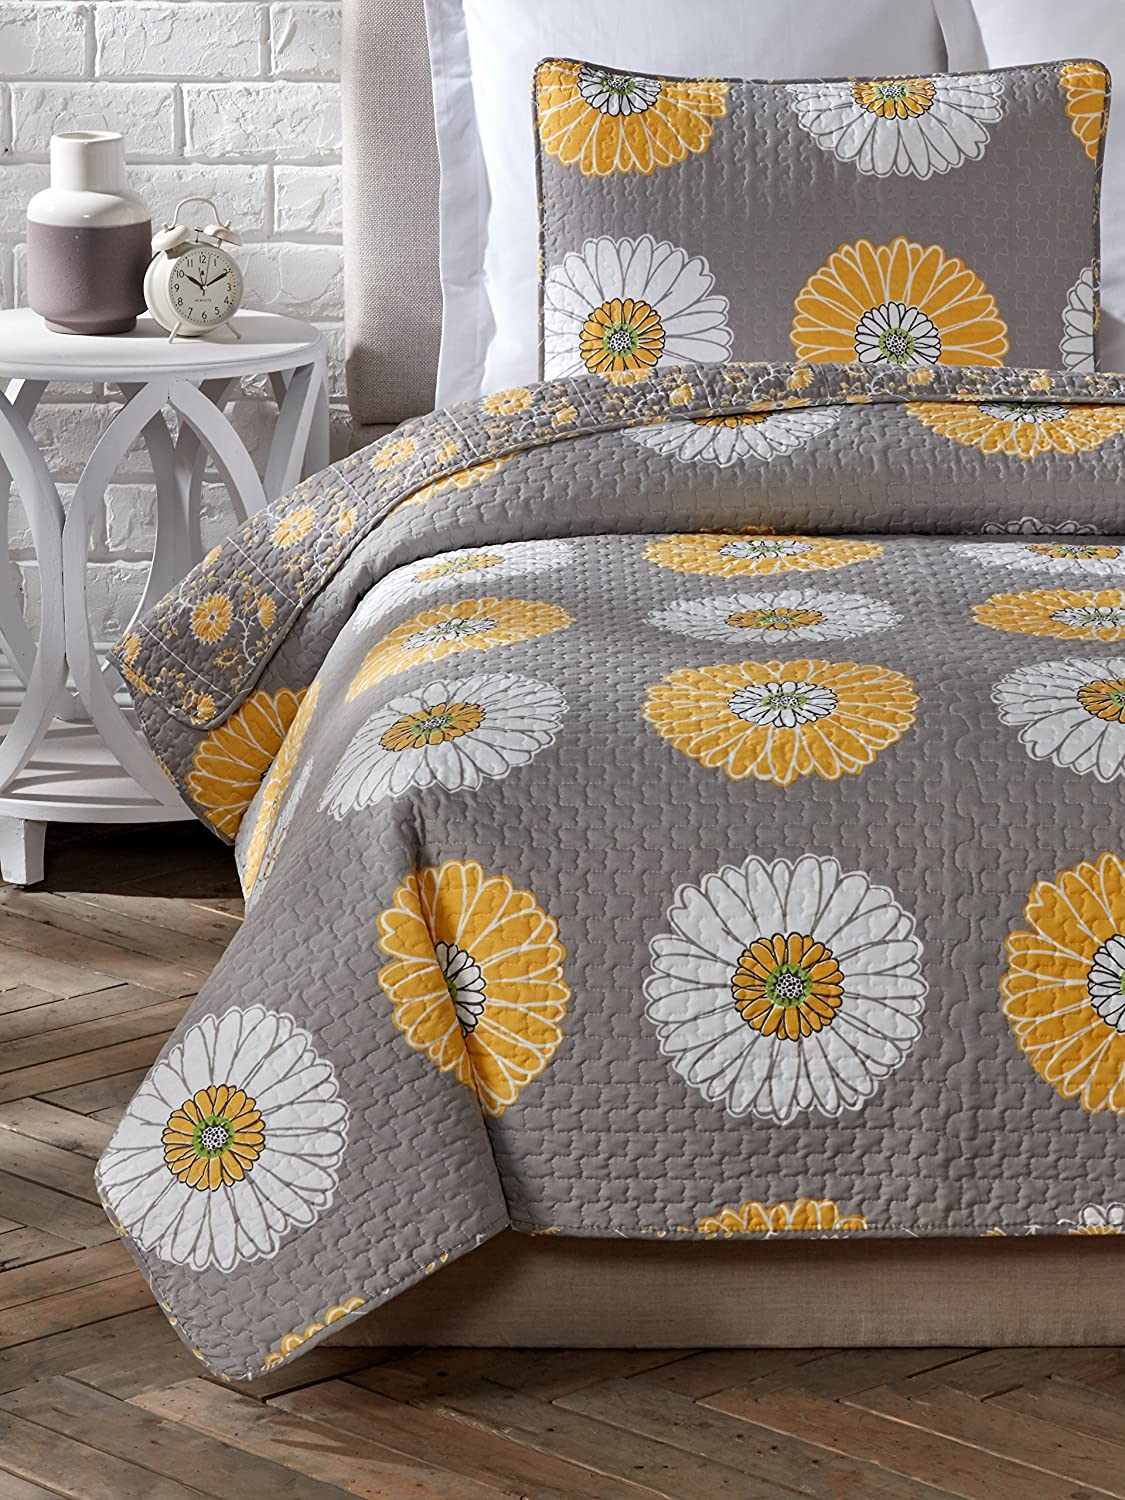 Cozy Line Home Fashions 3 Piece Anya Floral Quilt Set, Full/Queen